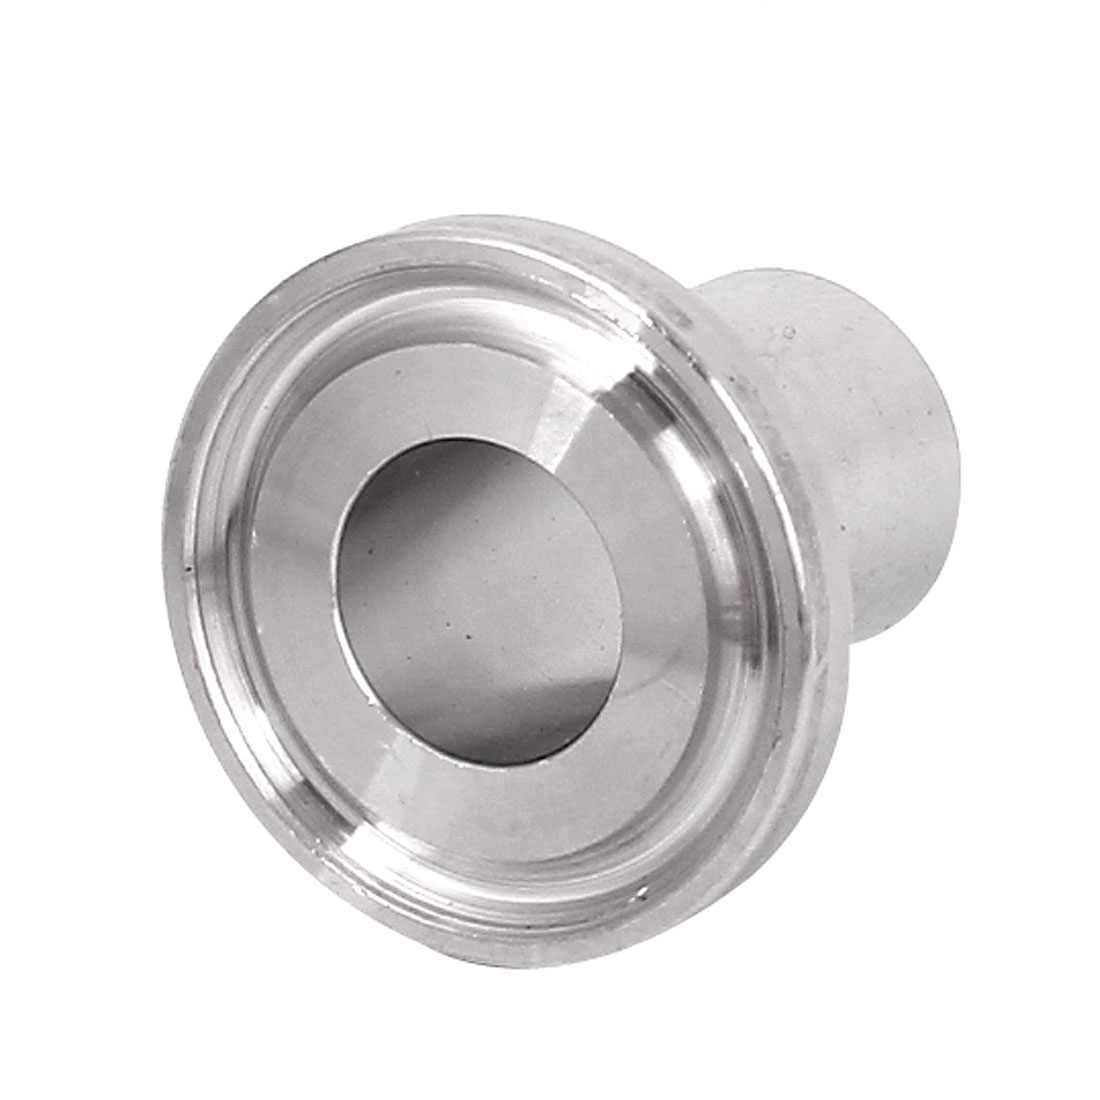 Tri Clamp Type SUS 316 Stainless Steel 14mm OD Sanitary Pipe Weld on Ferrule